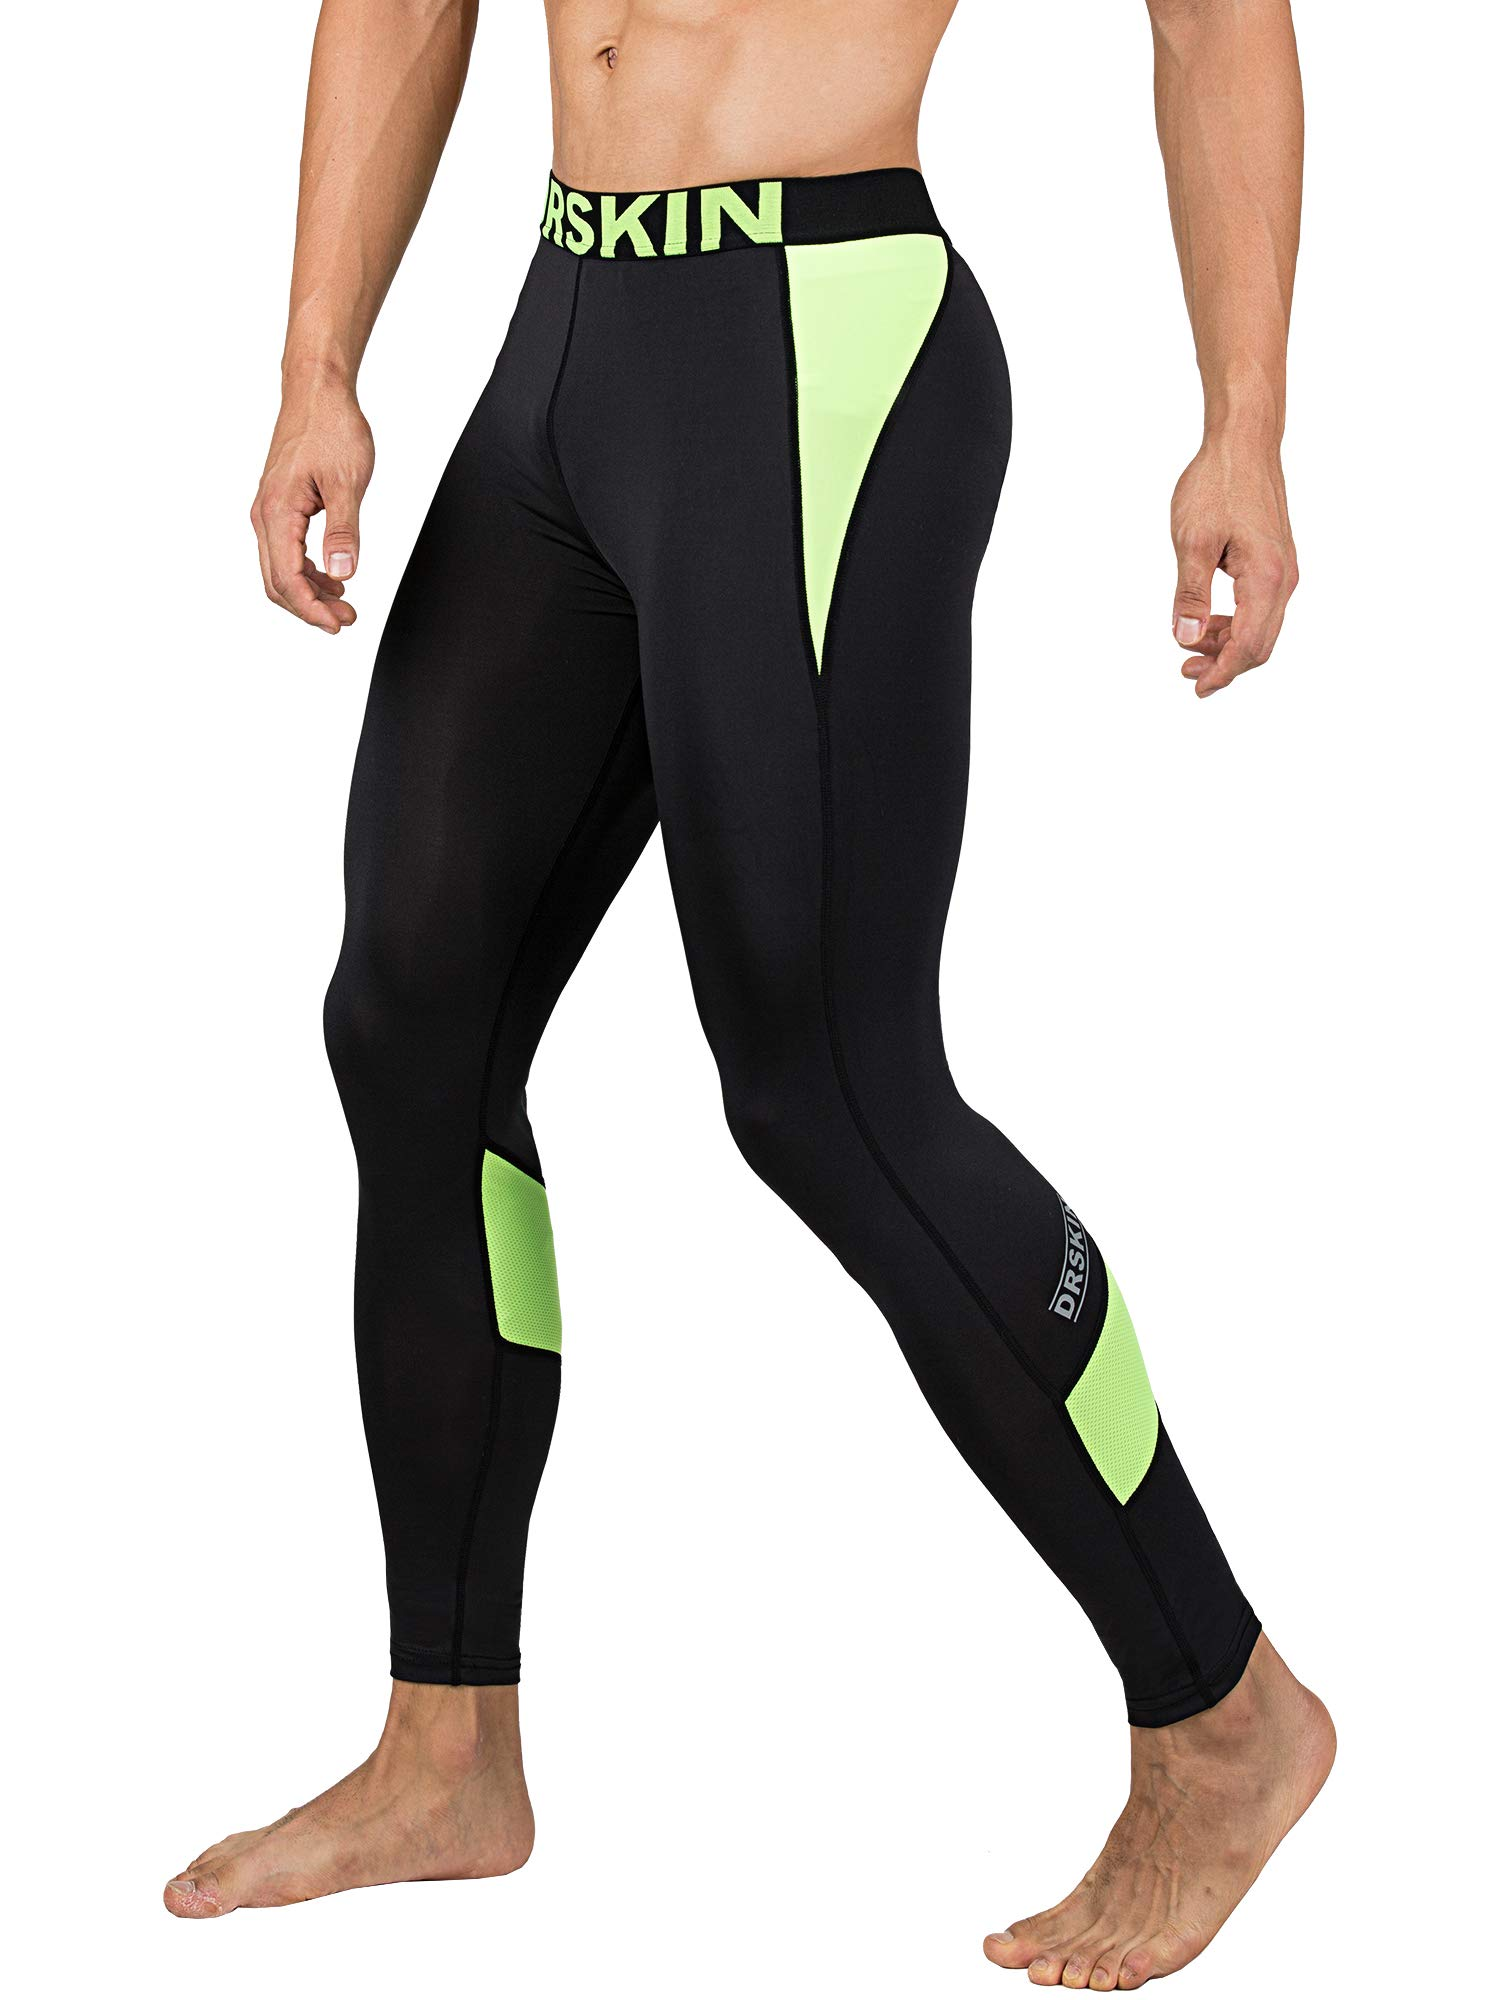 DRSKIN 1~3 Pack Men's Compression Dry Cool Sports Tights Pants Baselayer Running Leggings Yoga (Packs of 1, 2, or 3 Deals) (Came B-LG04, S)